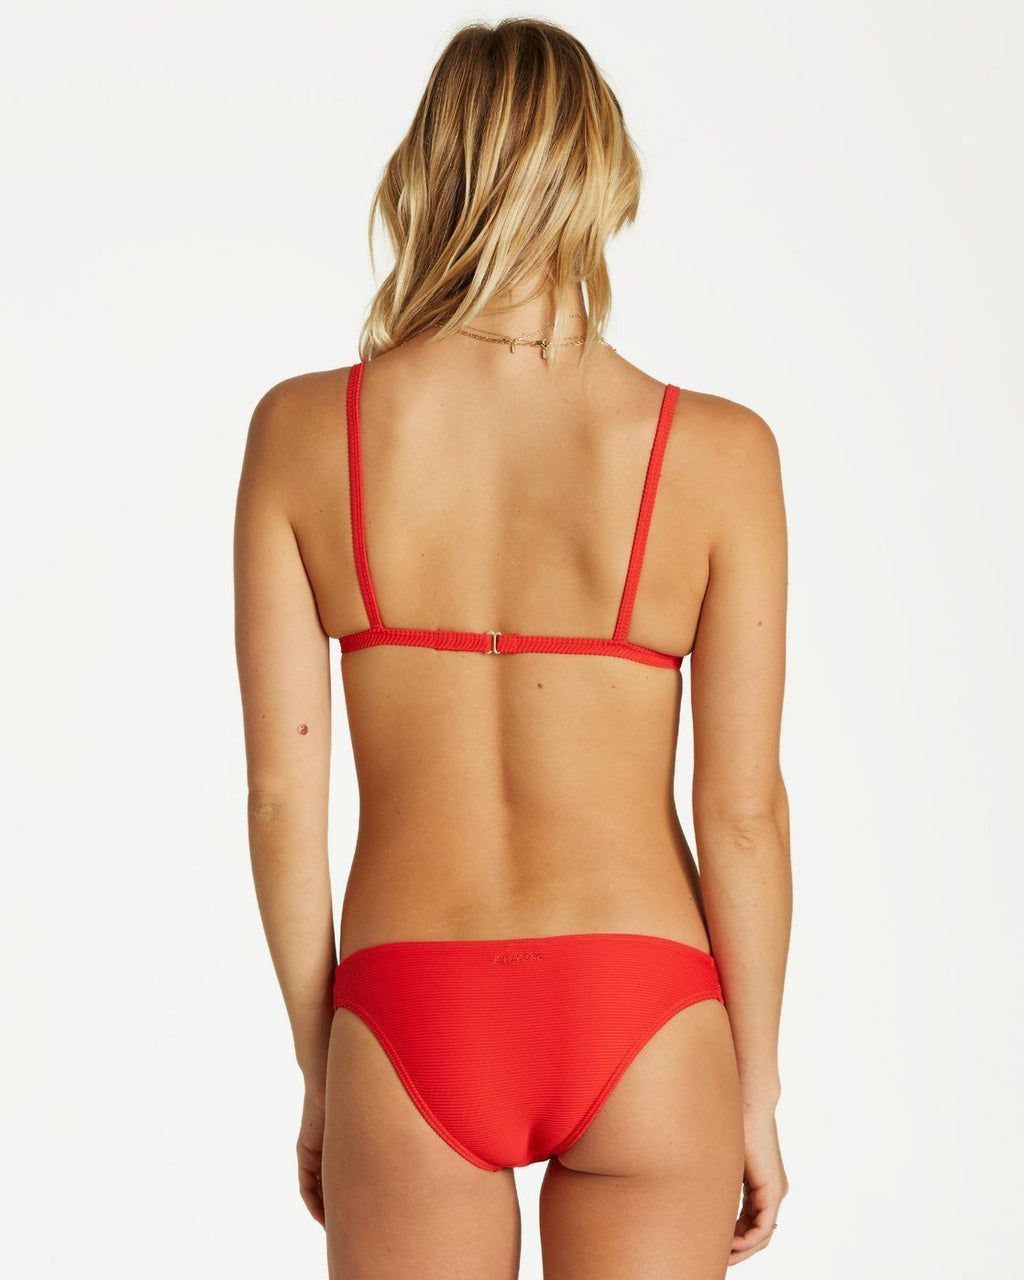 Billabong Women's Apparel - Swimwear Billabong - Tanlines Tropic